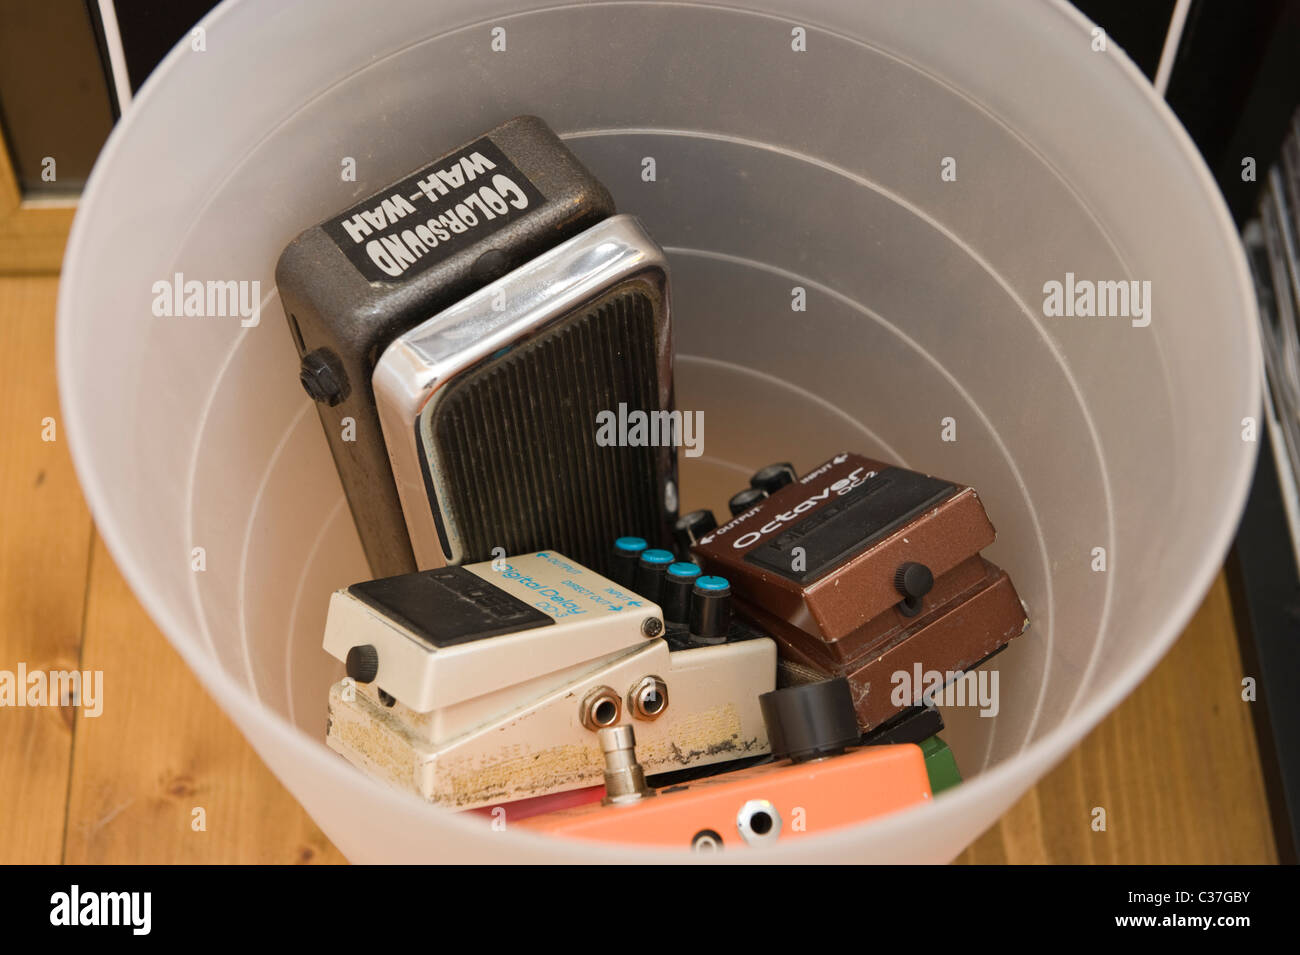 Wah Pedal Stock Photos Images Alamy Upgrade To Your Rock Guitar Effects Pedals In Plastic Bin Image